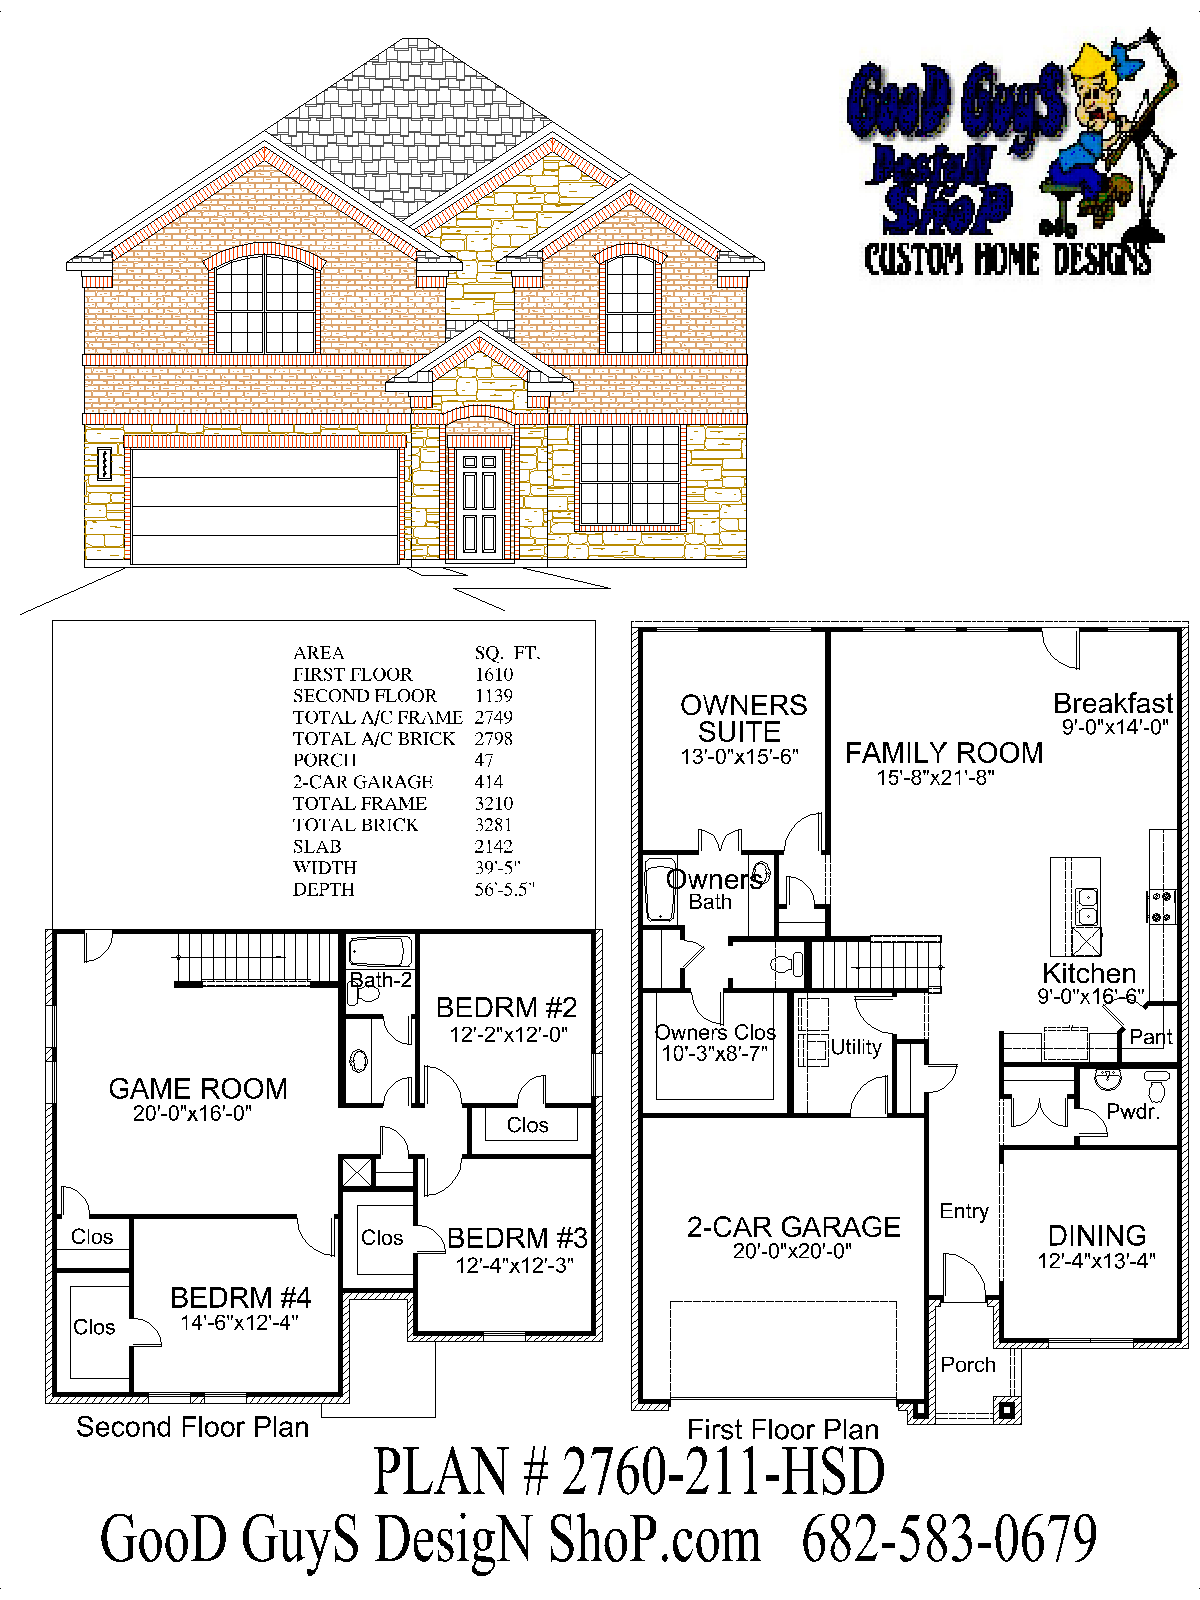 House Plans Two Story Plan 2760 Sq Ft 4 Bedrooms 2 Bath